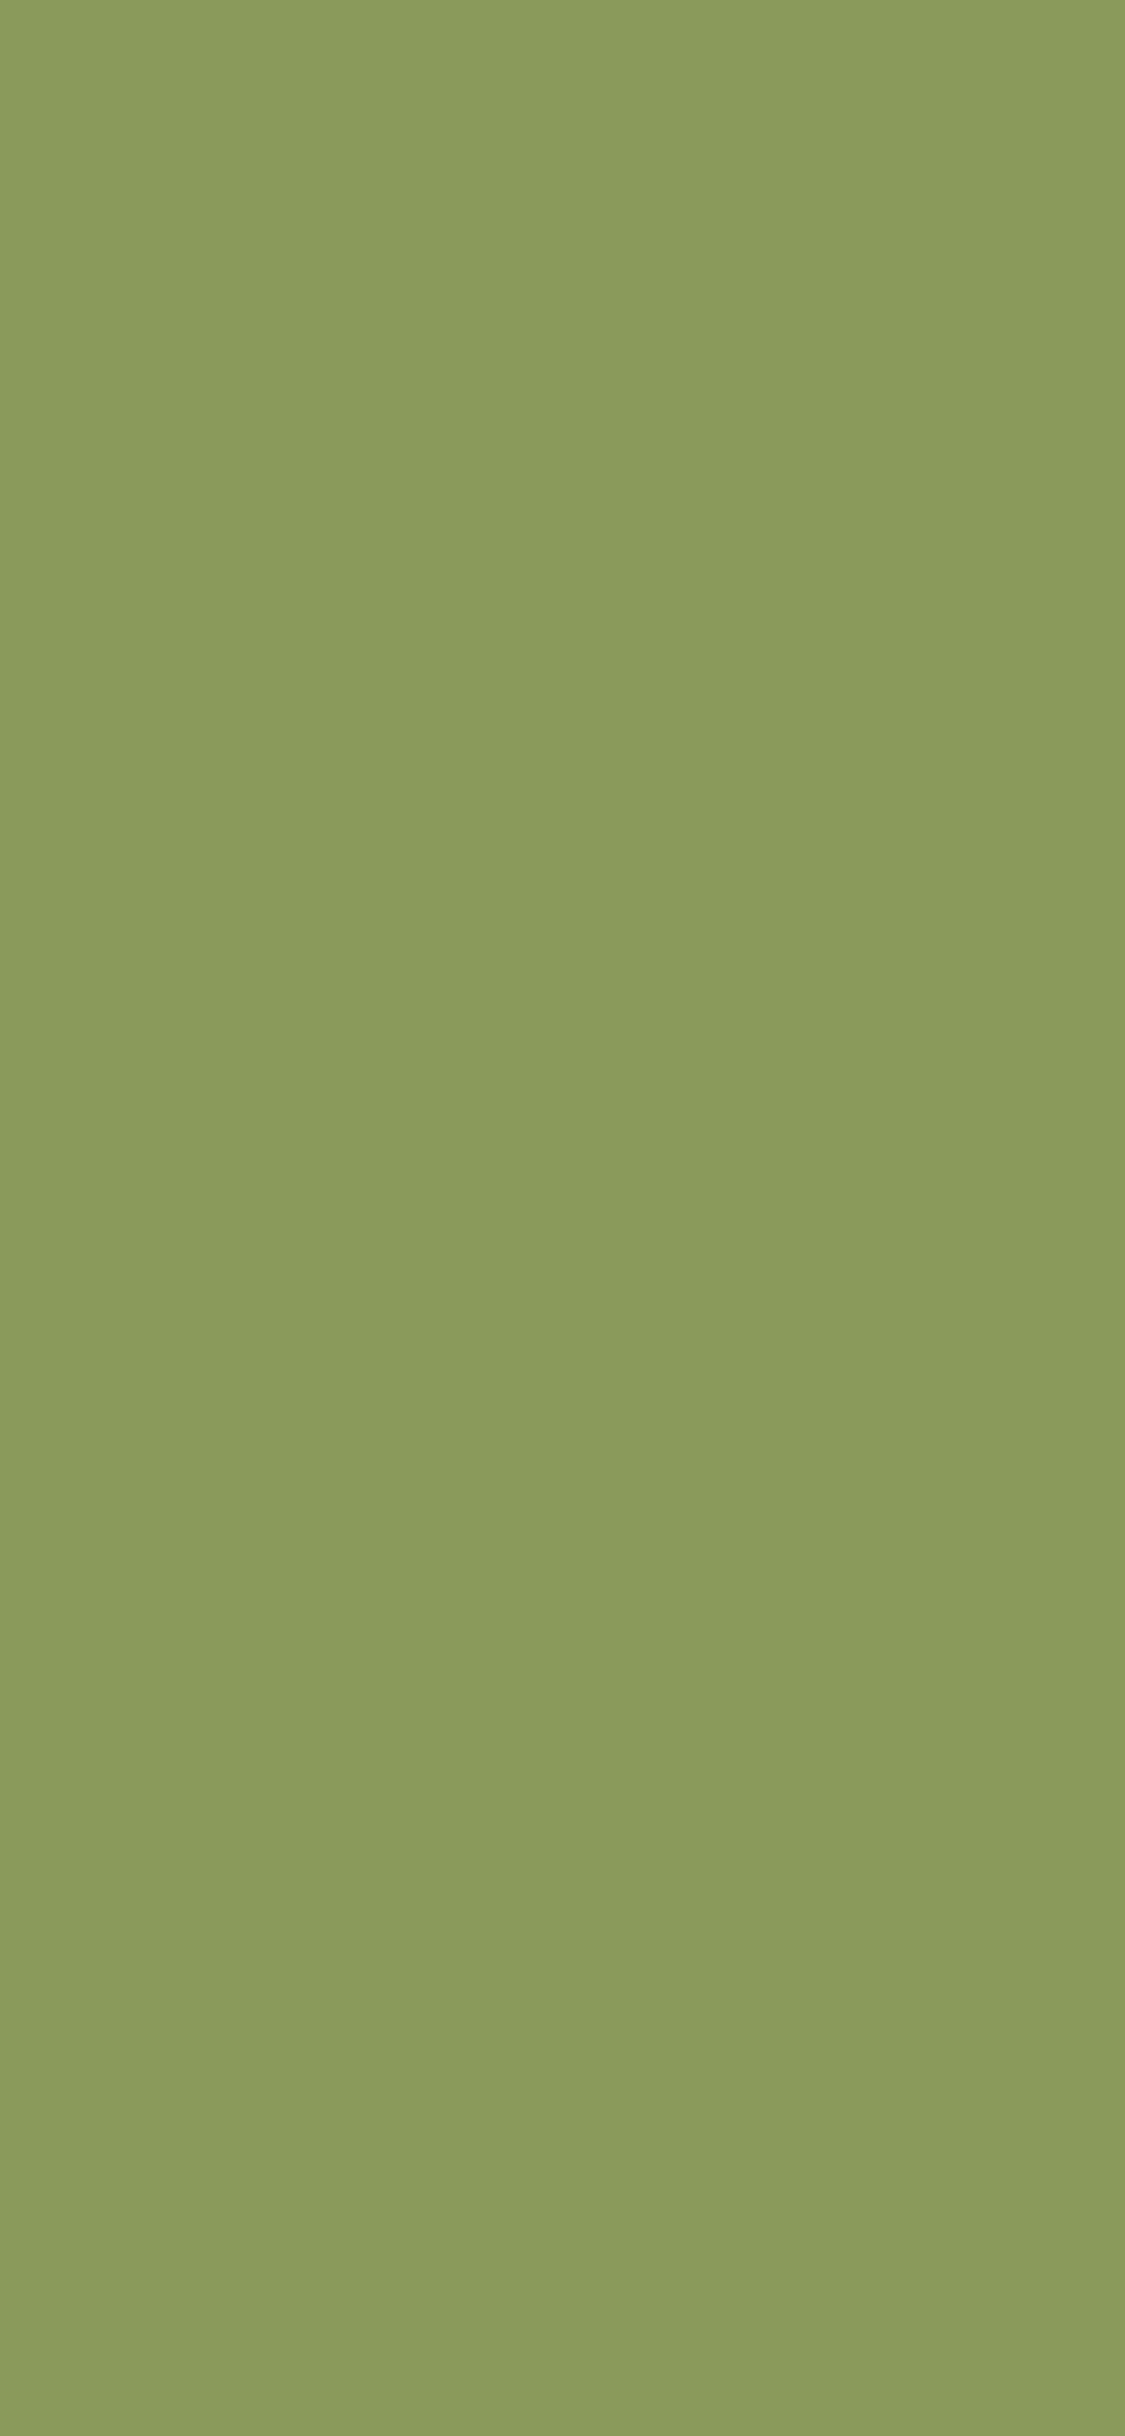 1125x2436 Moss Green Solid Color Background